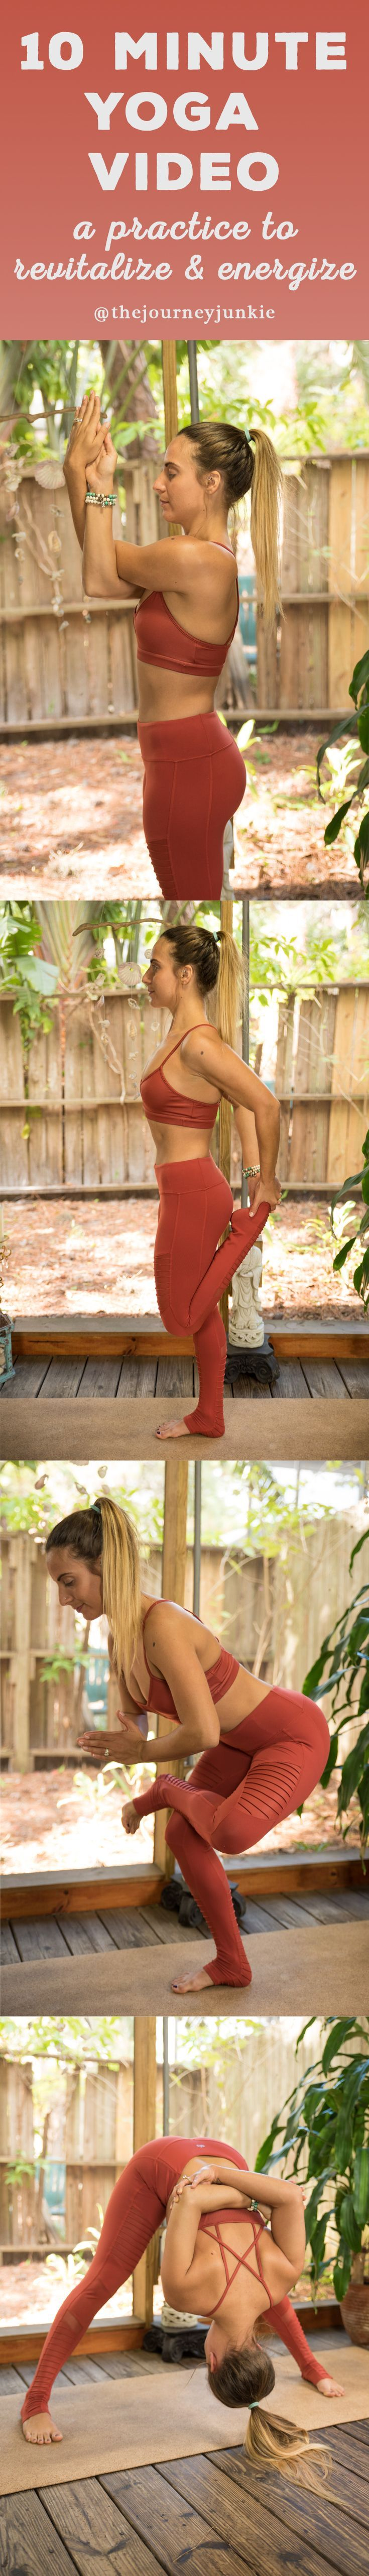 10 Minute Yoga Video to Energize + Revitalize - Pin now, do this flow ASAP!